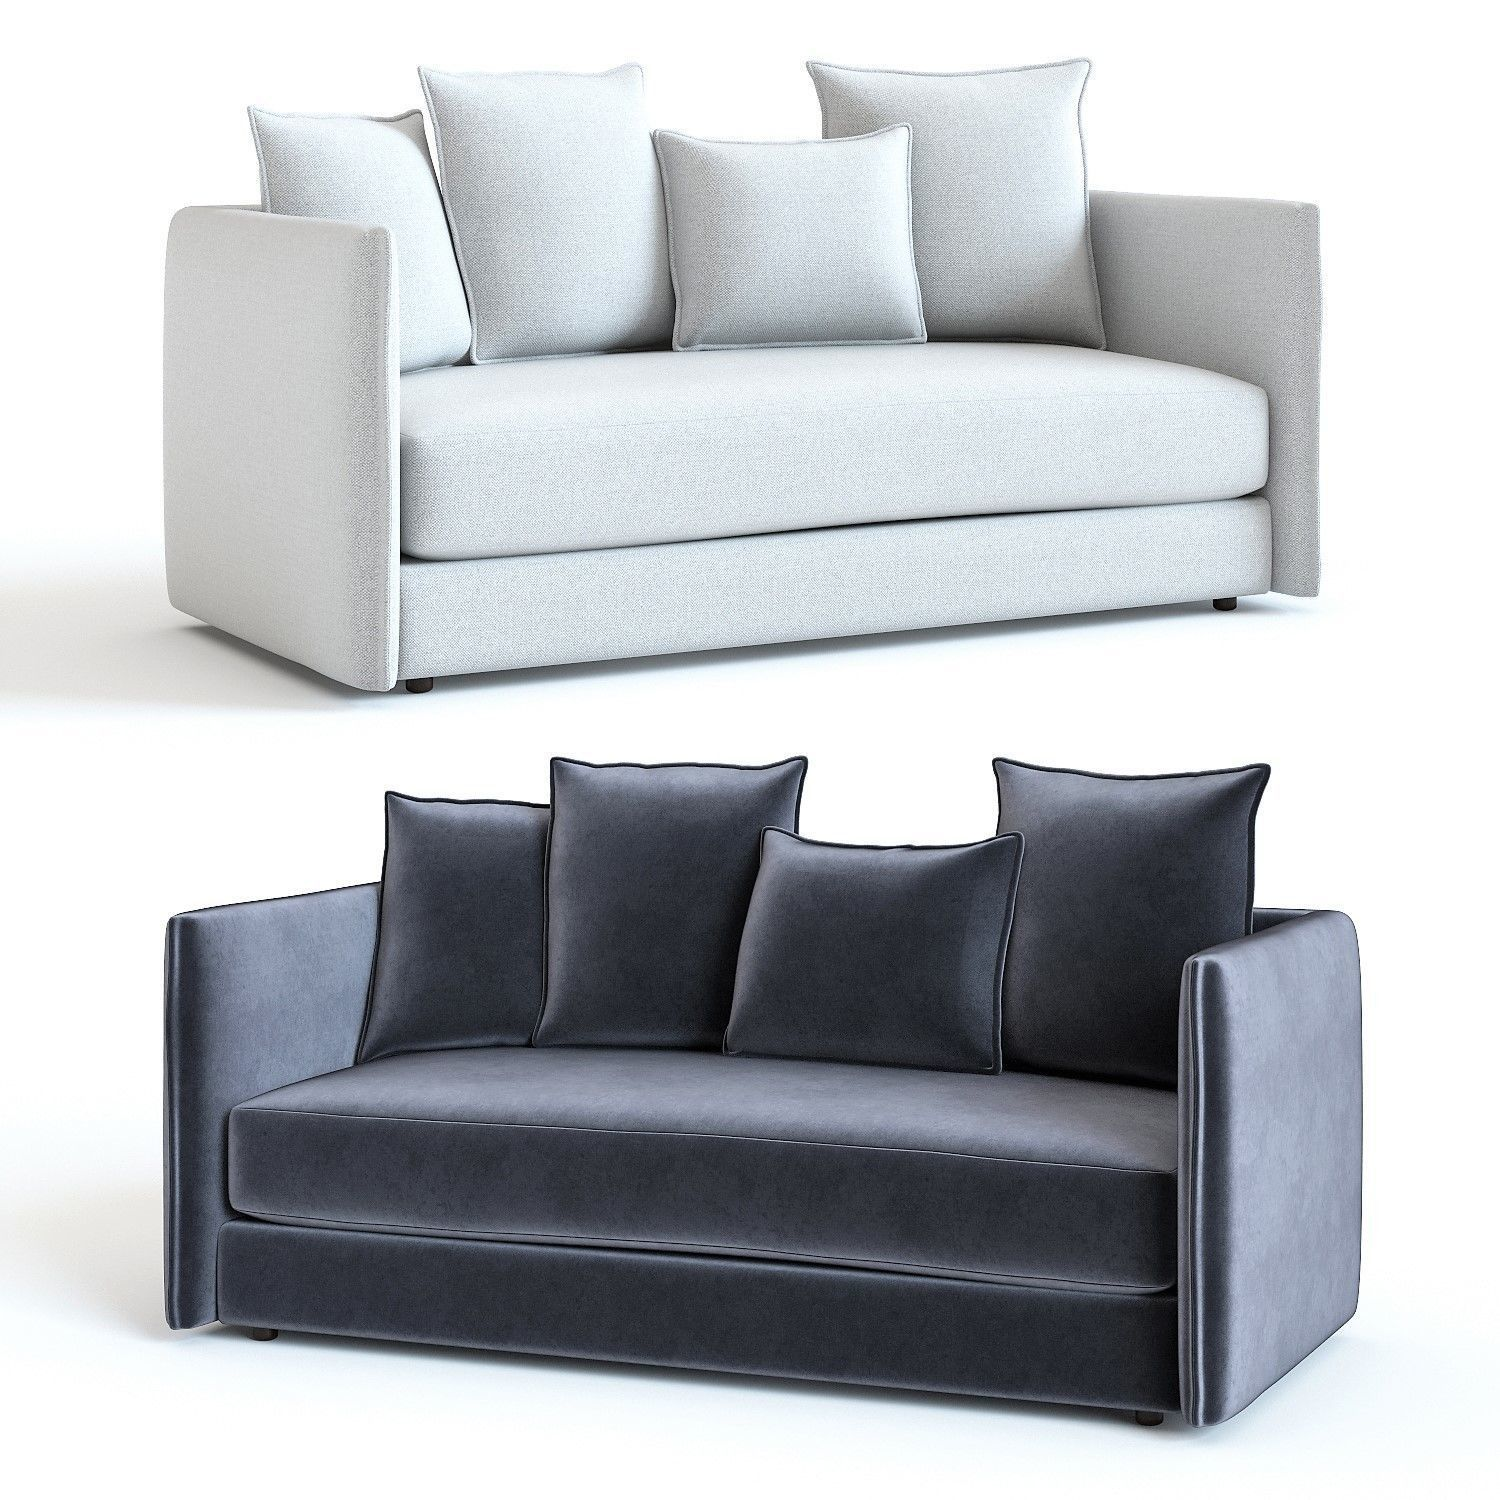 Marvelous West Elm Modern Chesterfield Sofa 3D Model Gmtry Best Dining Table And Chair Ideas Images Gmtryco